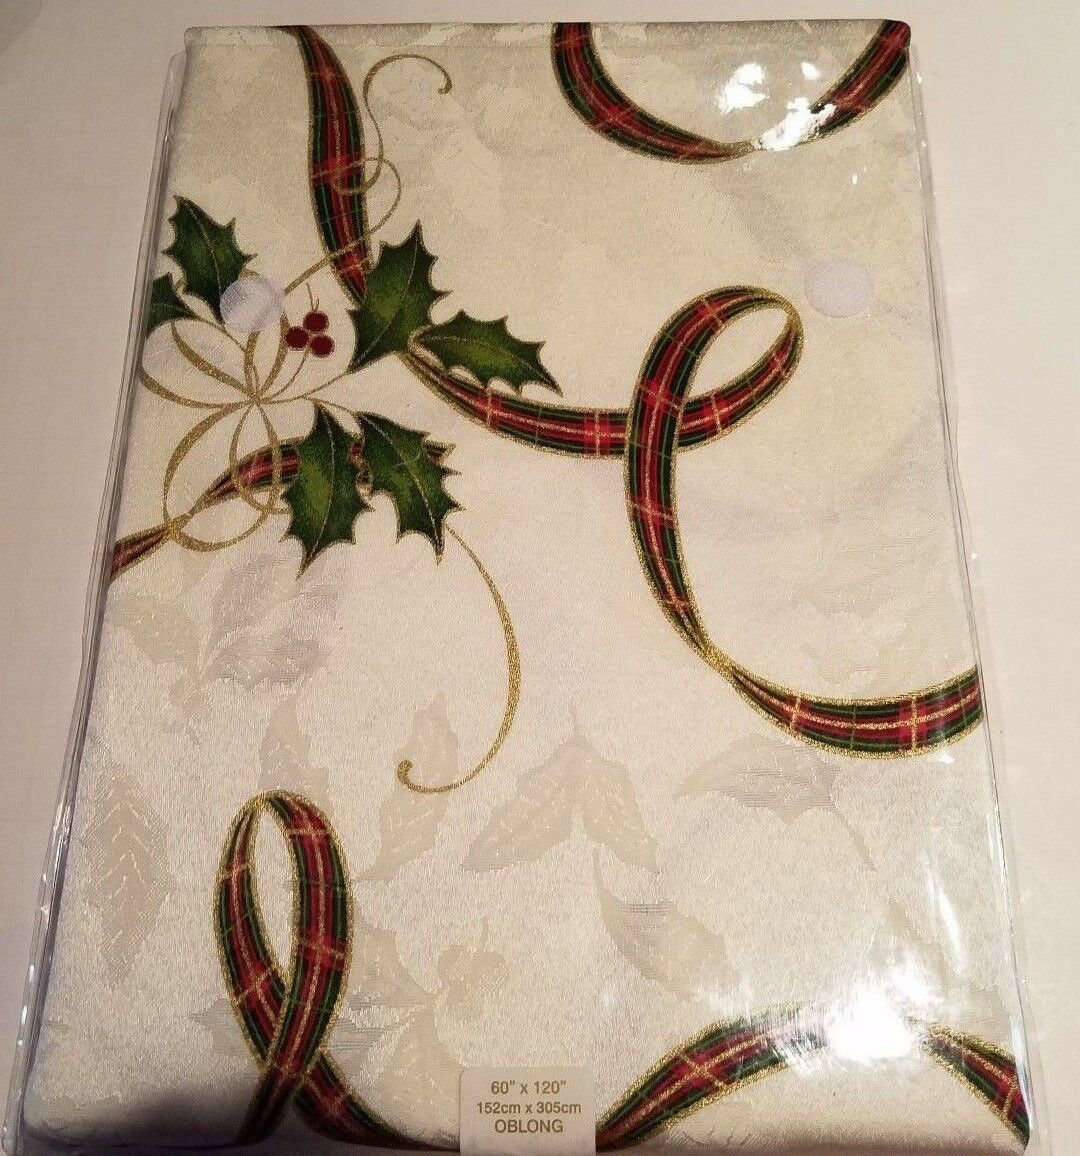 Ivory 47596044681 Lenox Holiday Nouveau Tablecloth 60 by-120-Inch Oblong//Rectangle